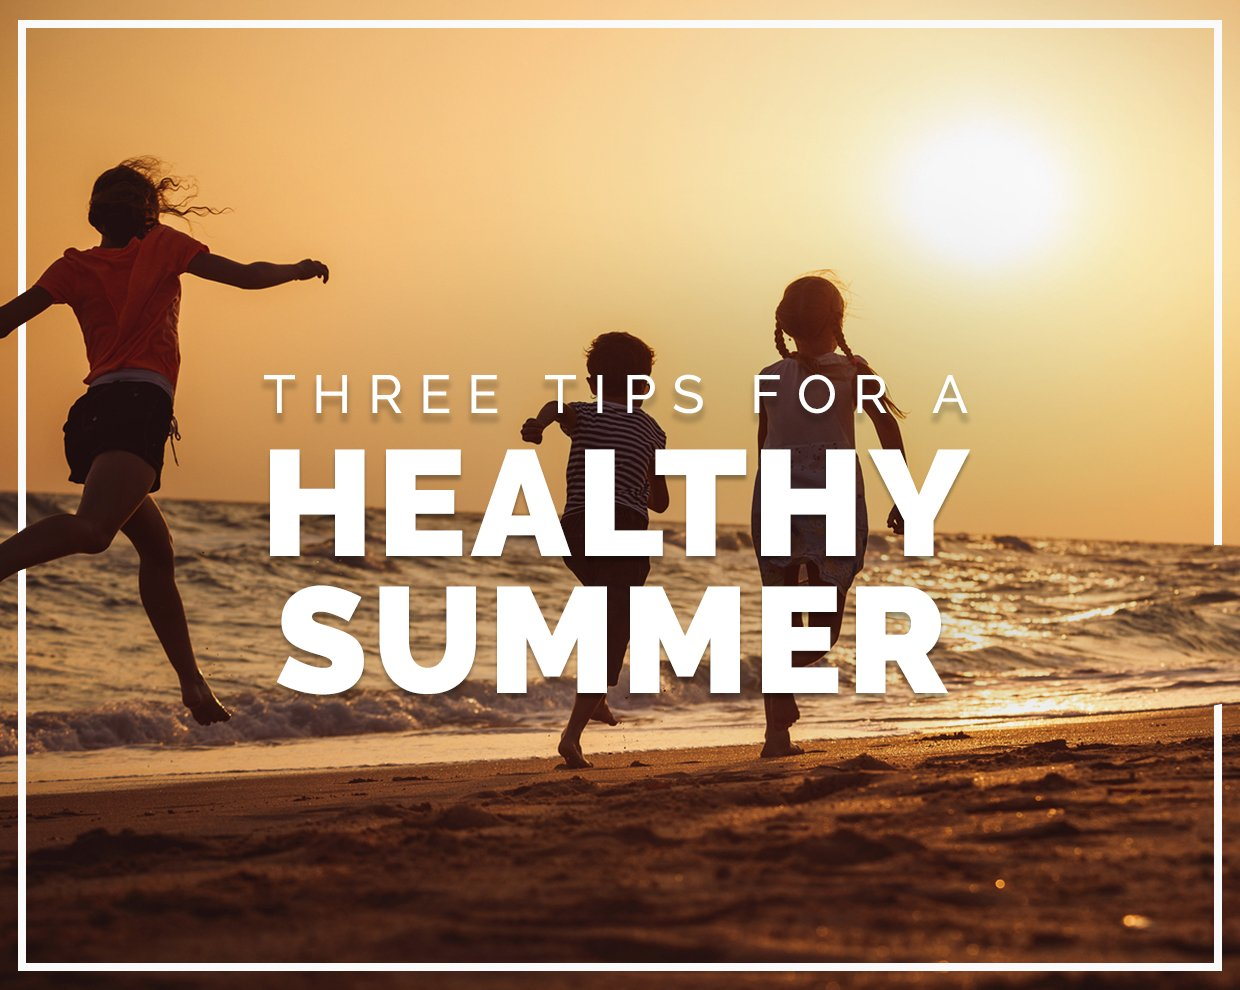 3 tips for a healthy summer